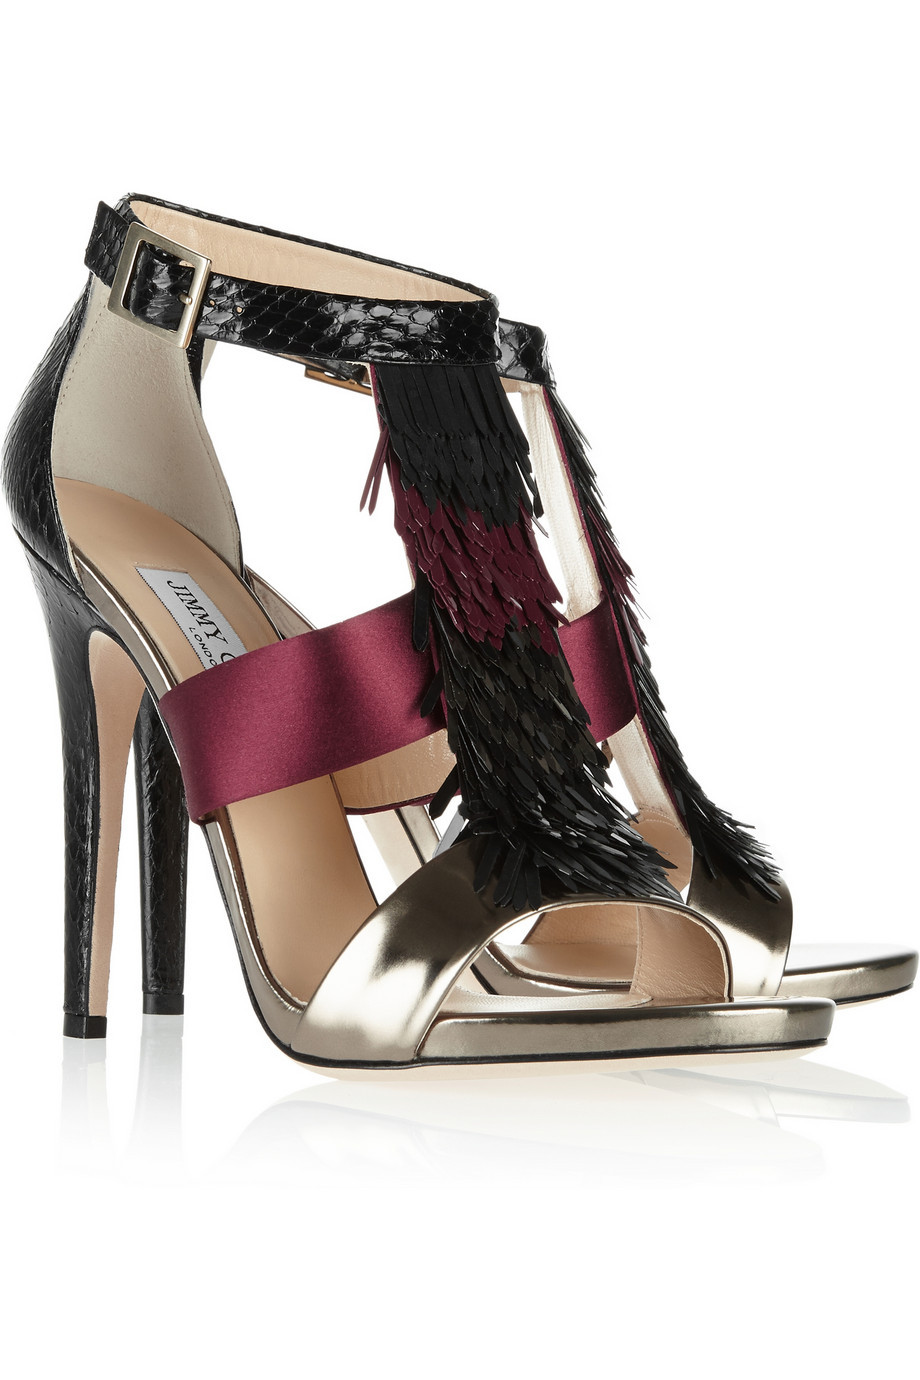 Fringe-adorned-jimmy-choo-wedding-shoes.full